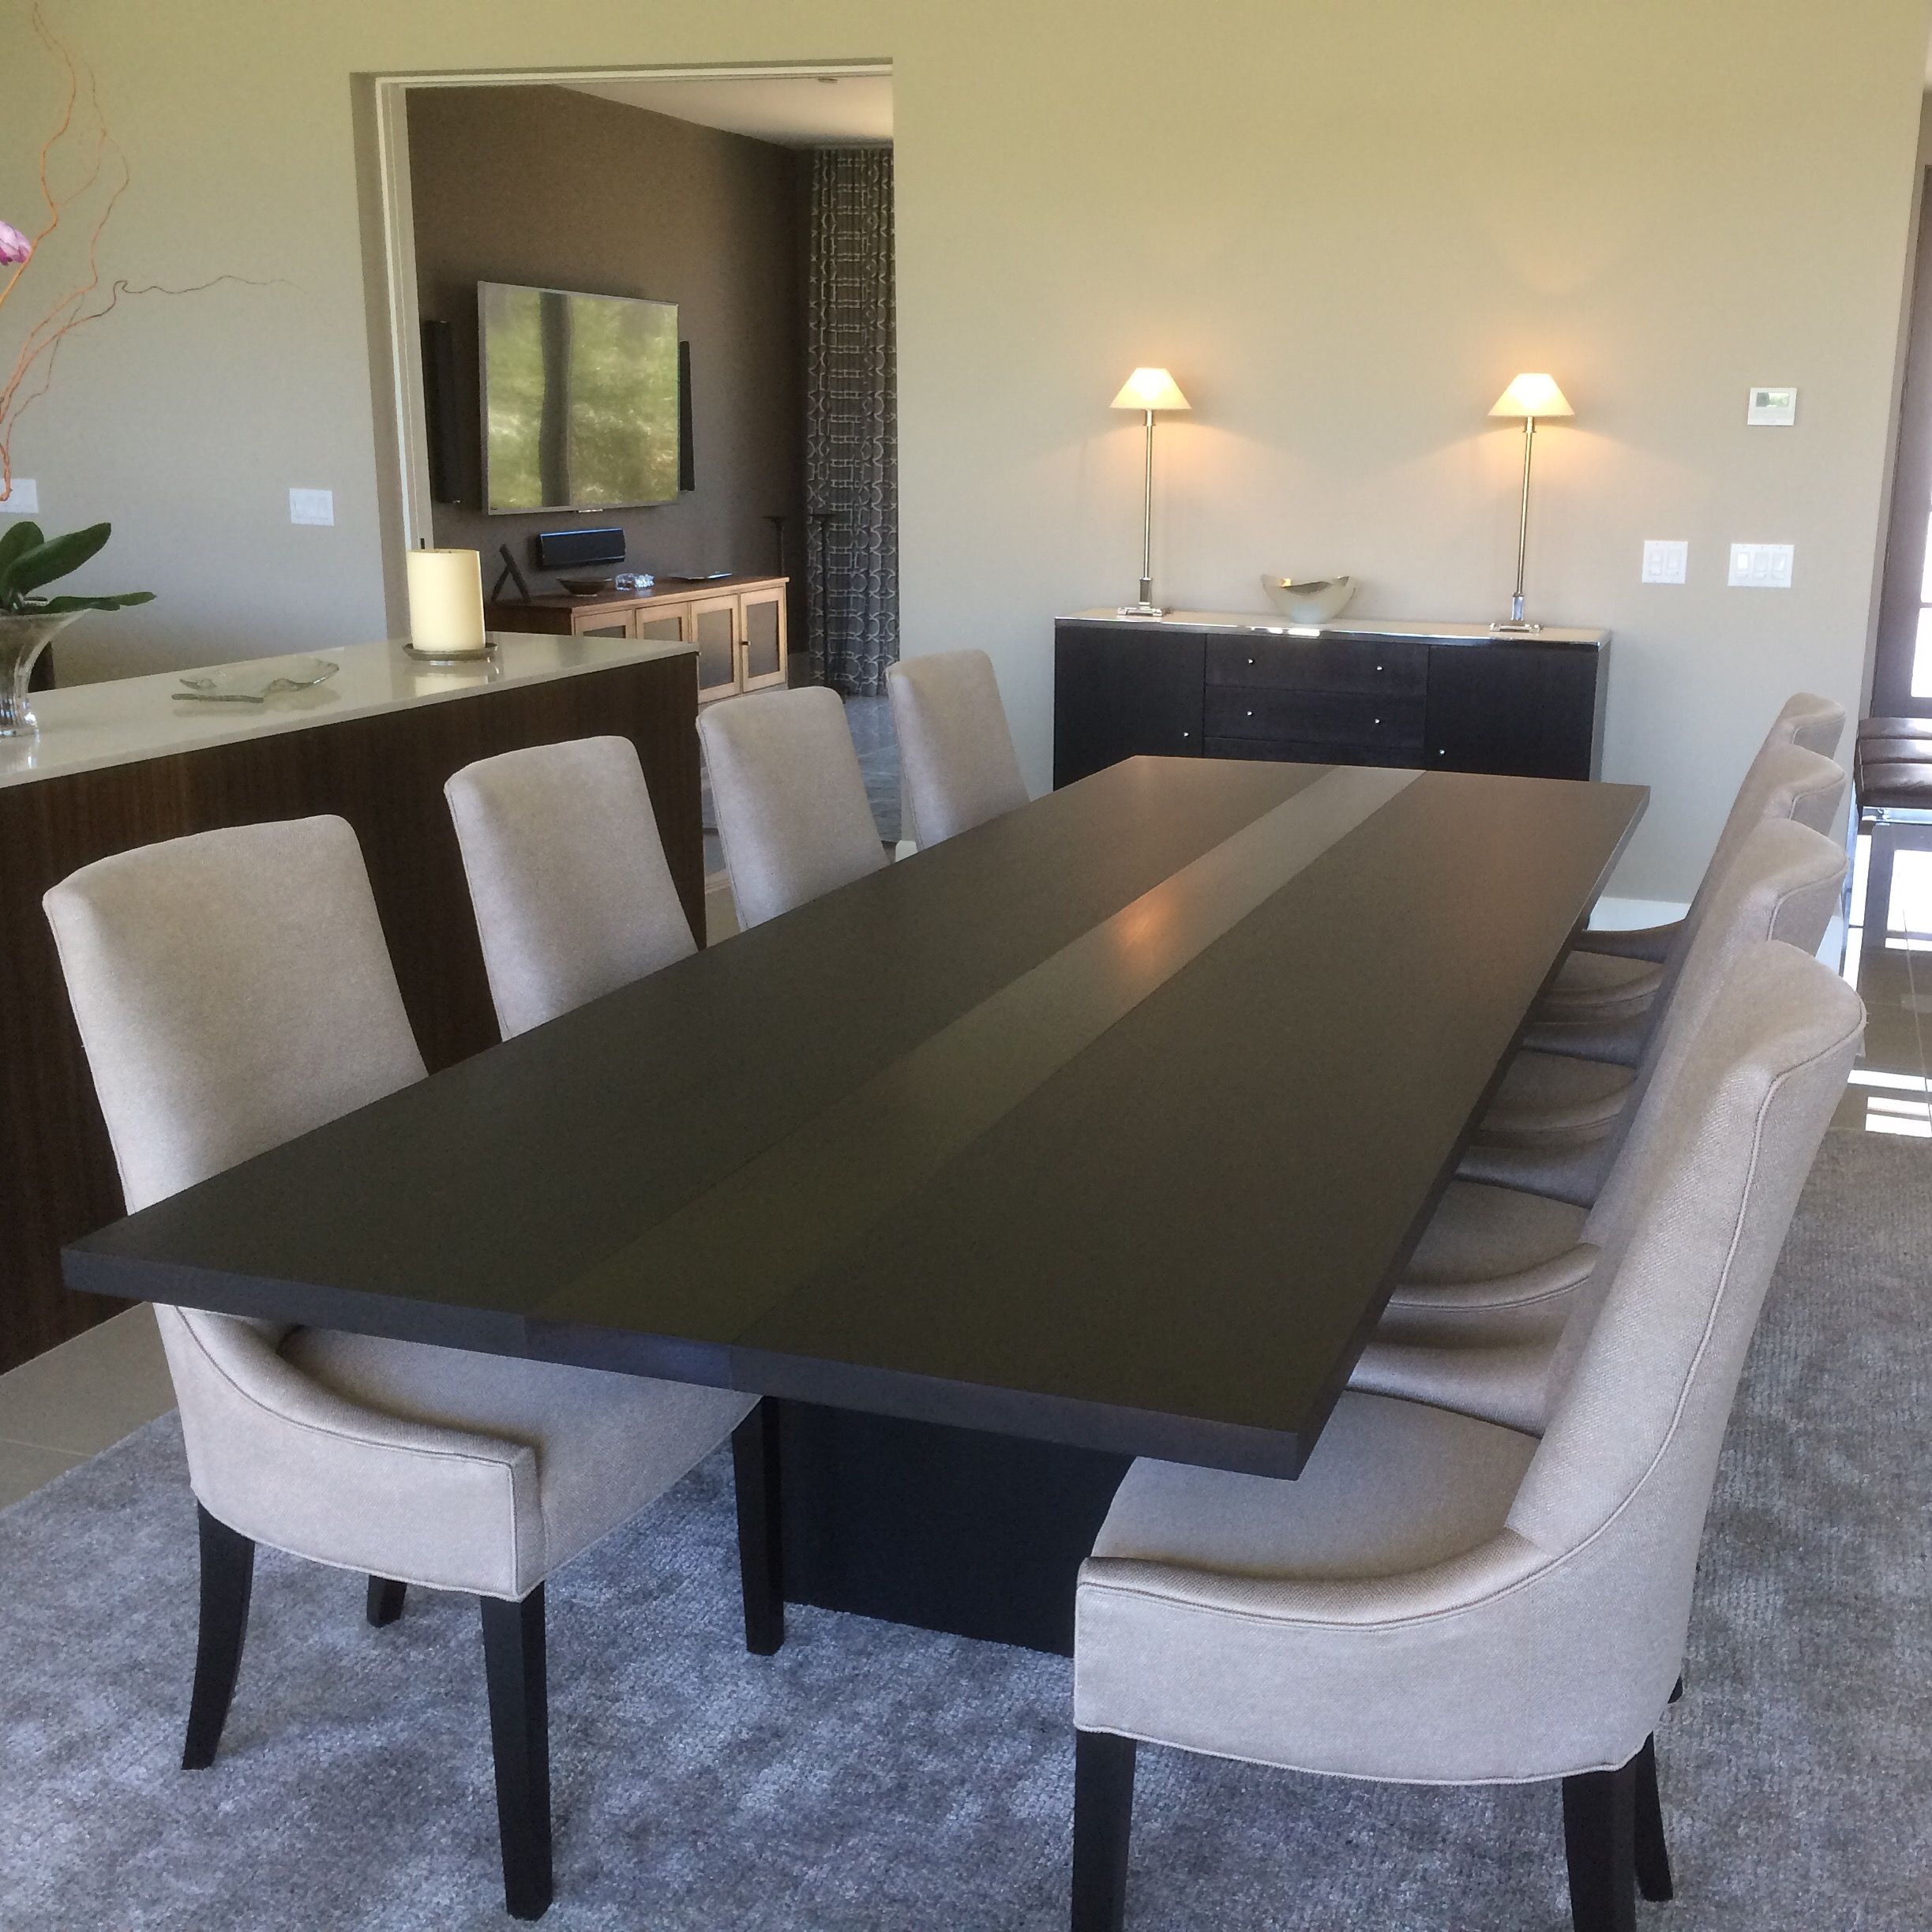 Handmade Modern Dining Table by Bedre Woodworking  : 43321144453 from www.custommade.com size 2447 x 2447 jpeg 590kB